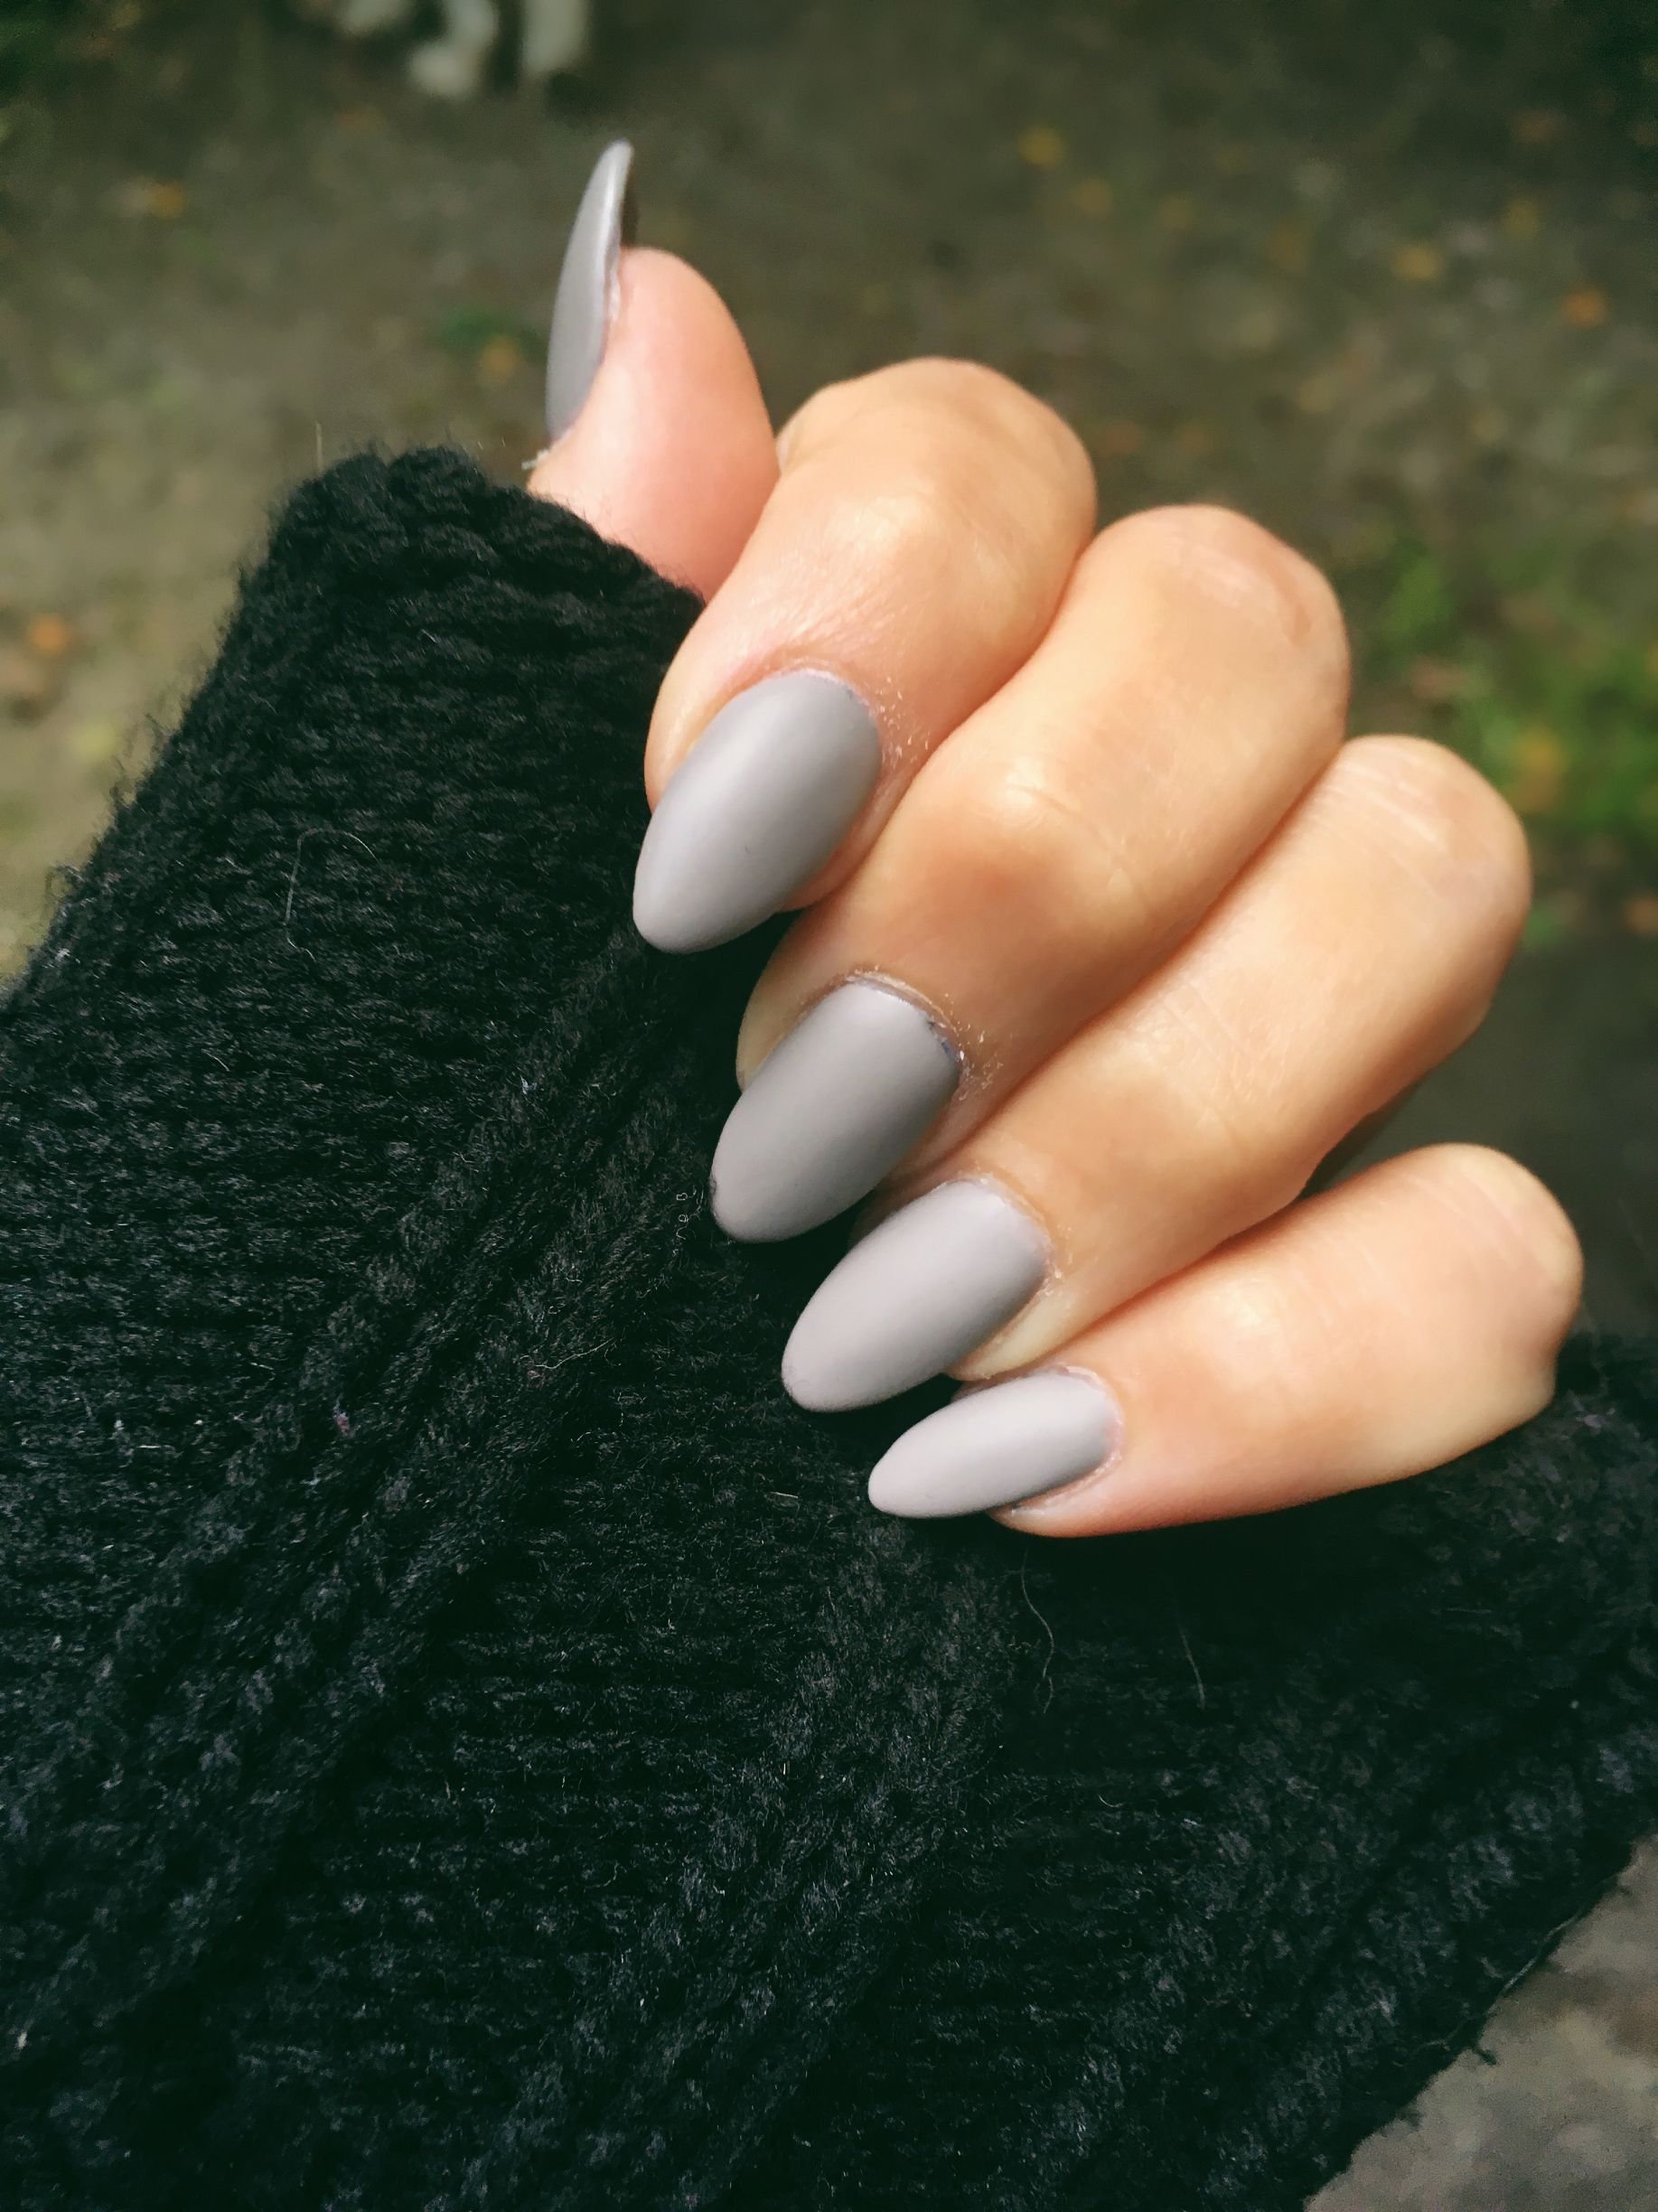 Nails grey greynails grau Nägel Acryl Herbst herbstnägel Fall ...